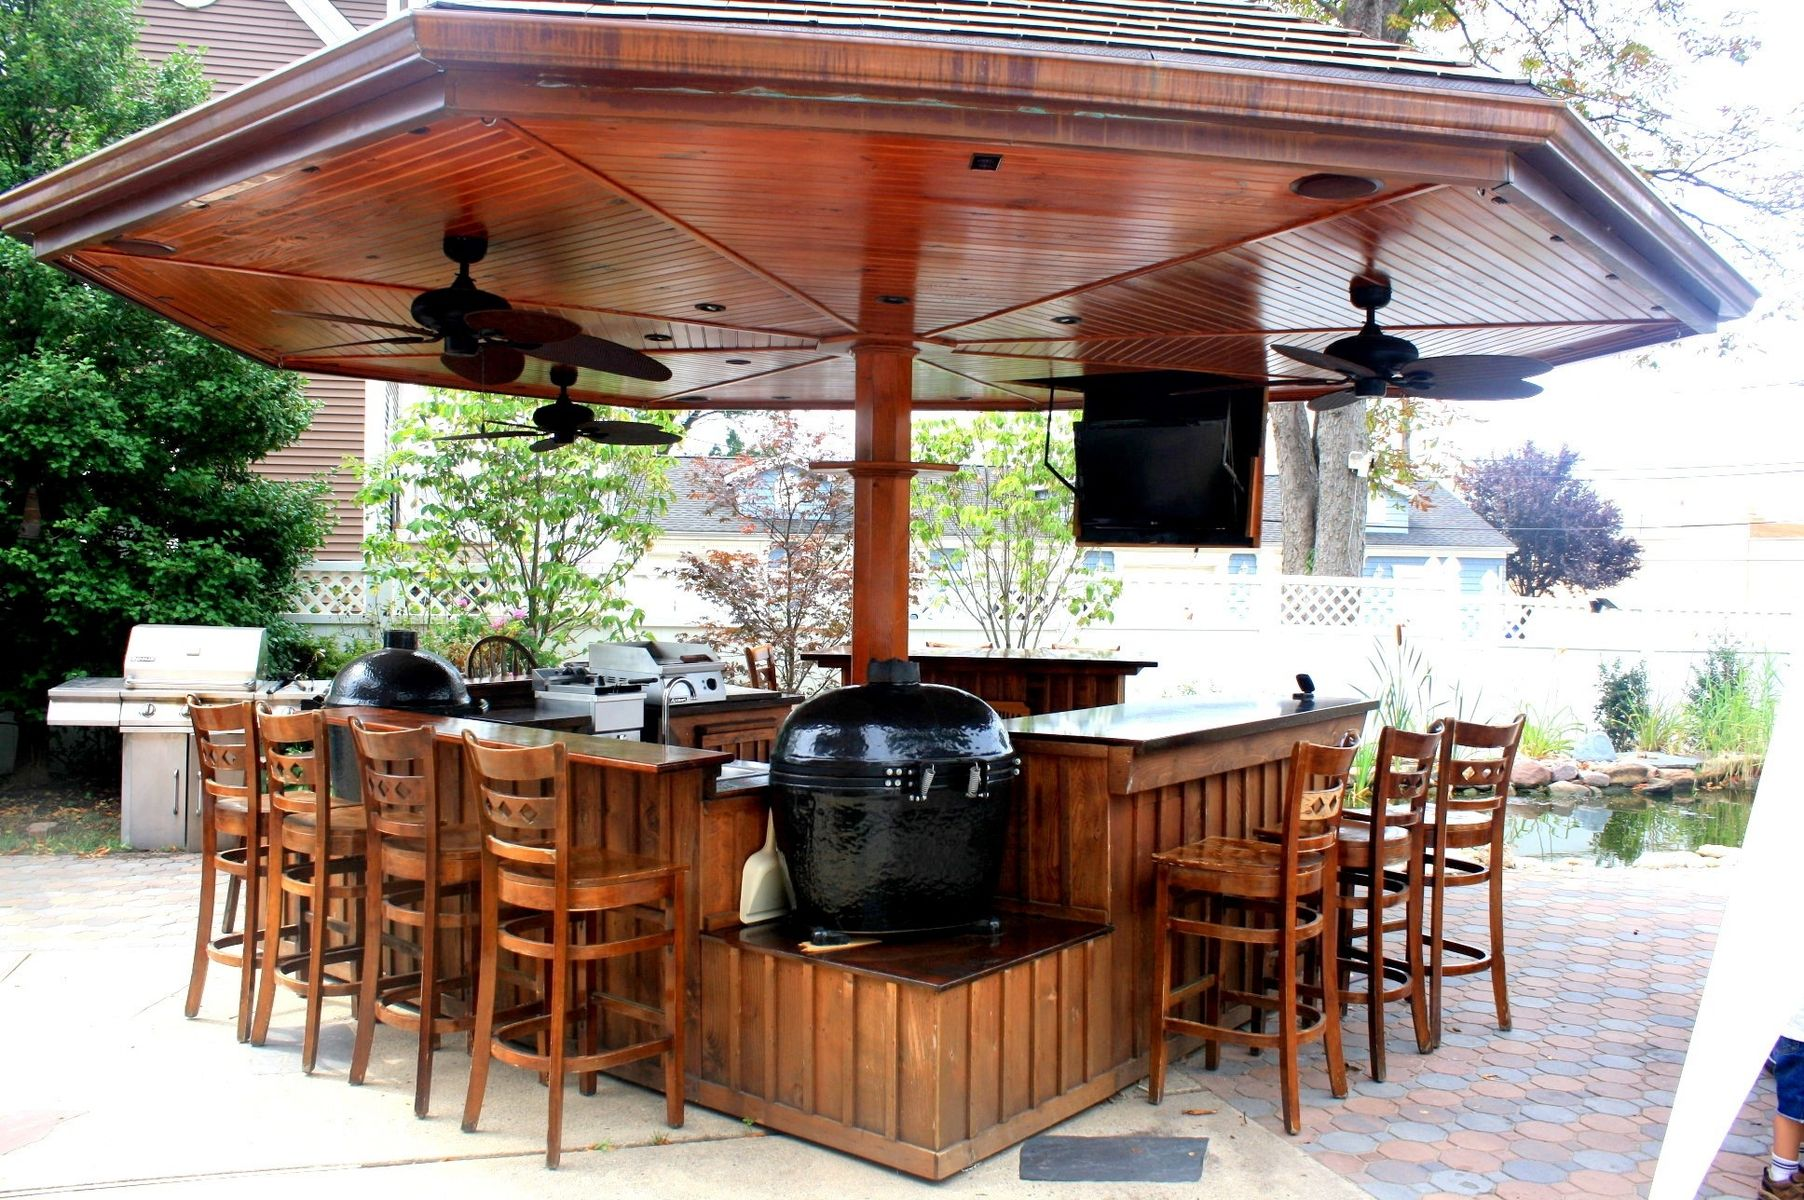 Handmade Primo Grill Outdoor Kitchen And Bar by Deck Kitchen ...